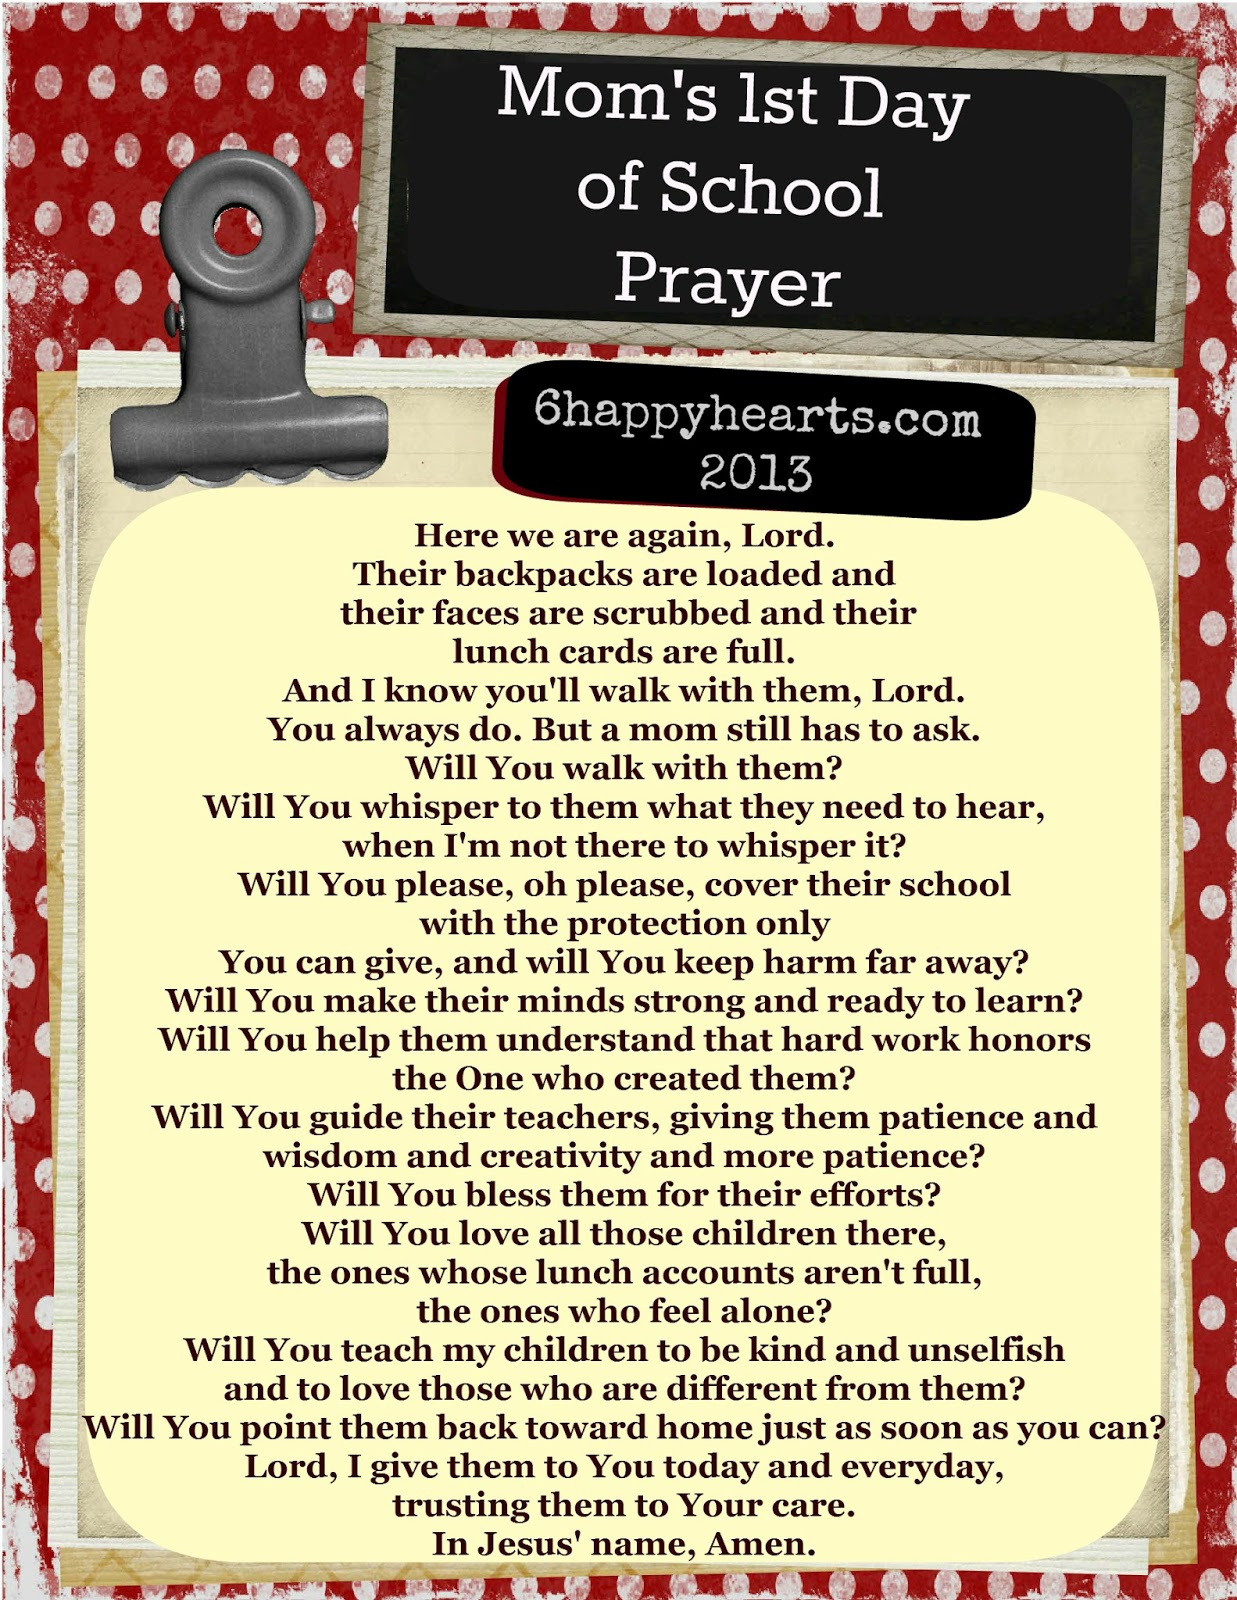 Prayer for the First Day of School